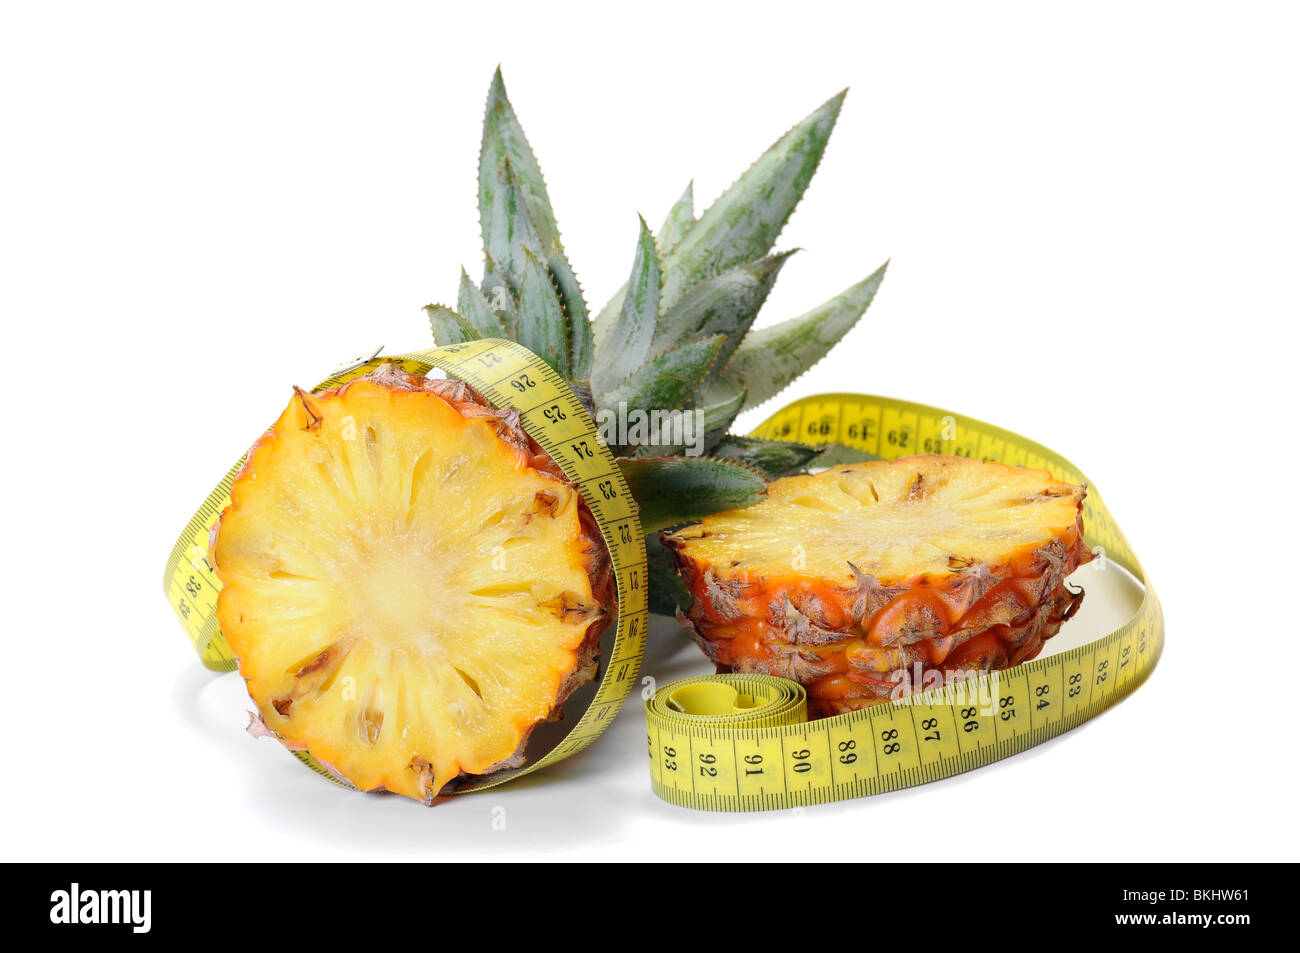 Ananas, pineapple measured the meter, health concept - Stock Image